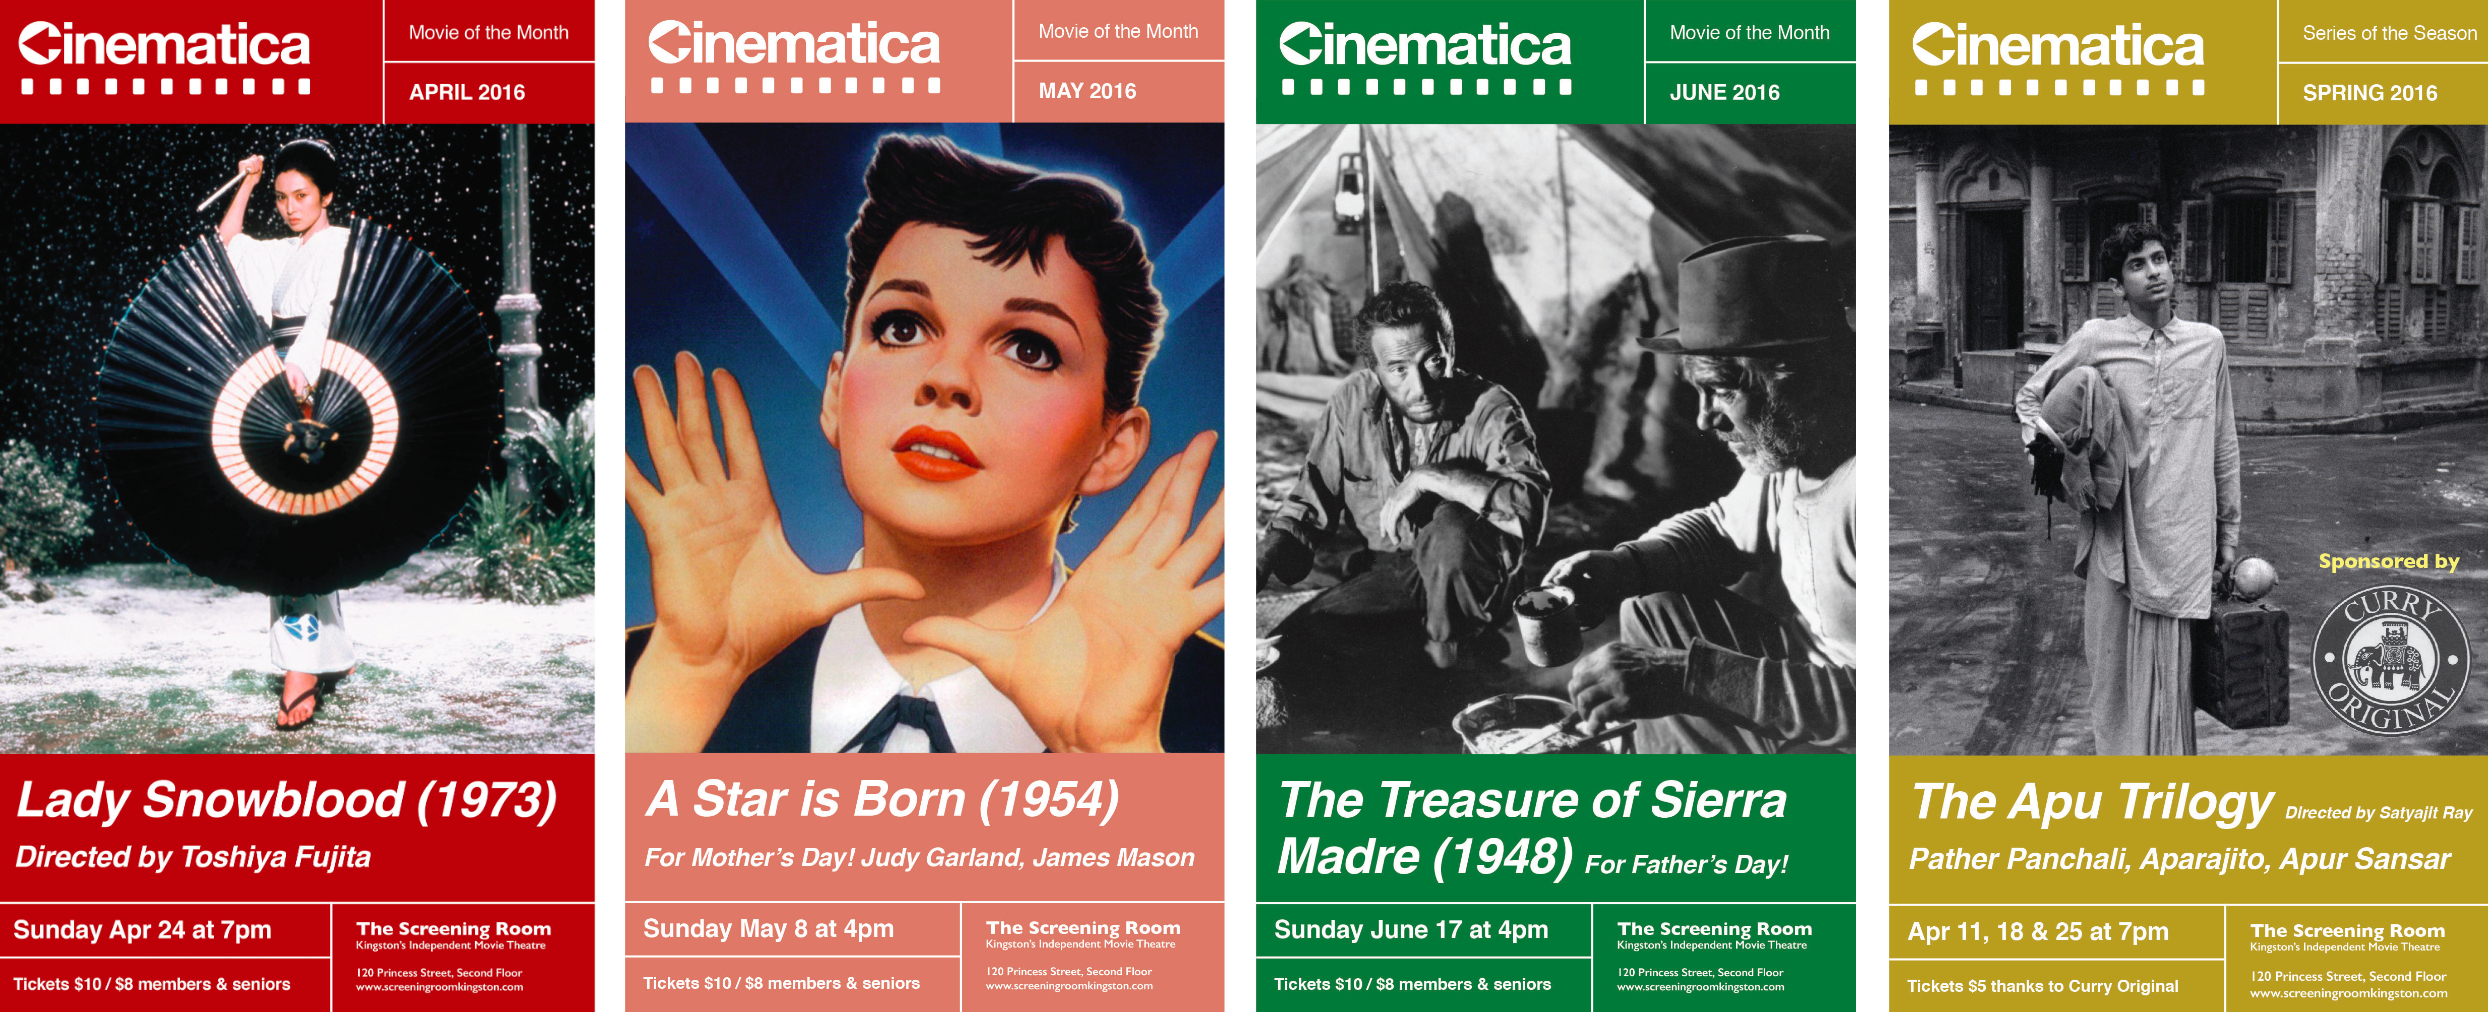 1258211a1ab3 The Cinematica Classic Movie Lineup for Spring 2016!